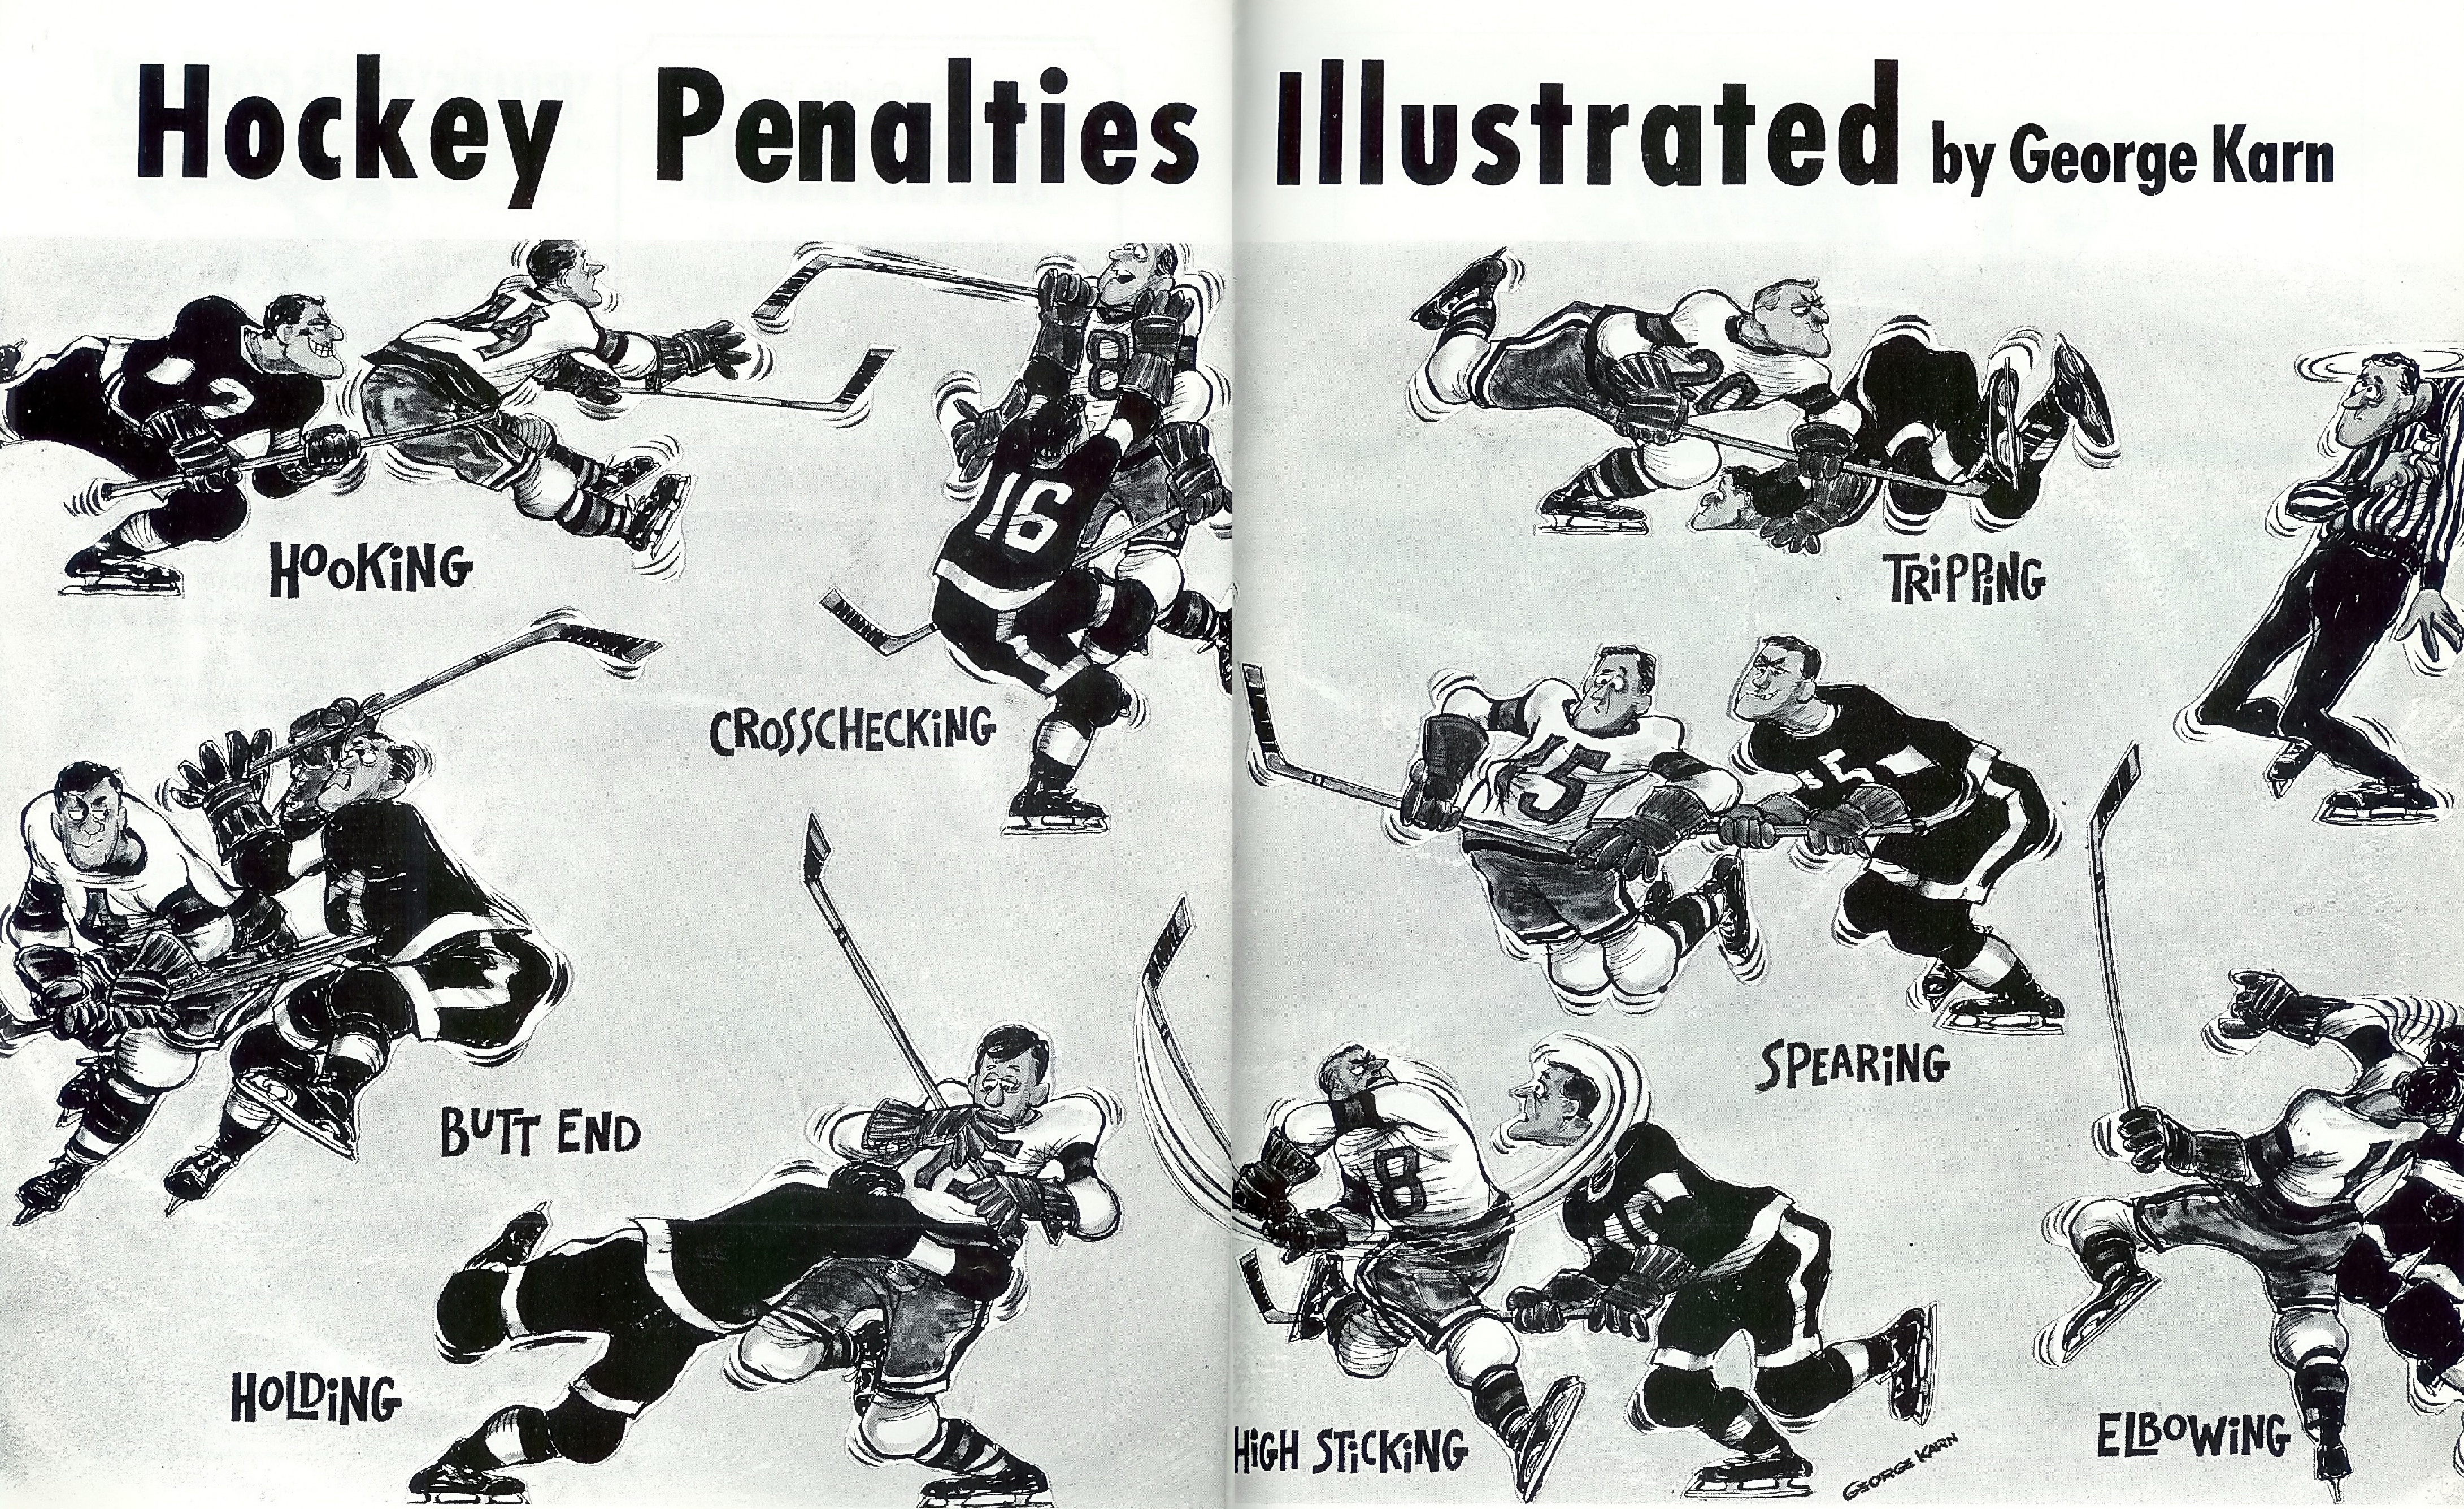 Ice hockey penalties